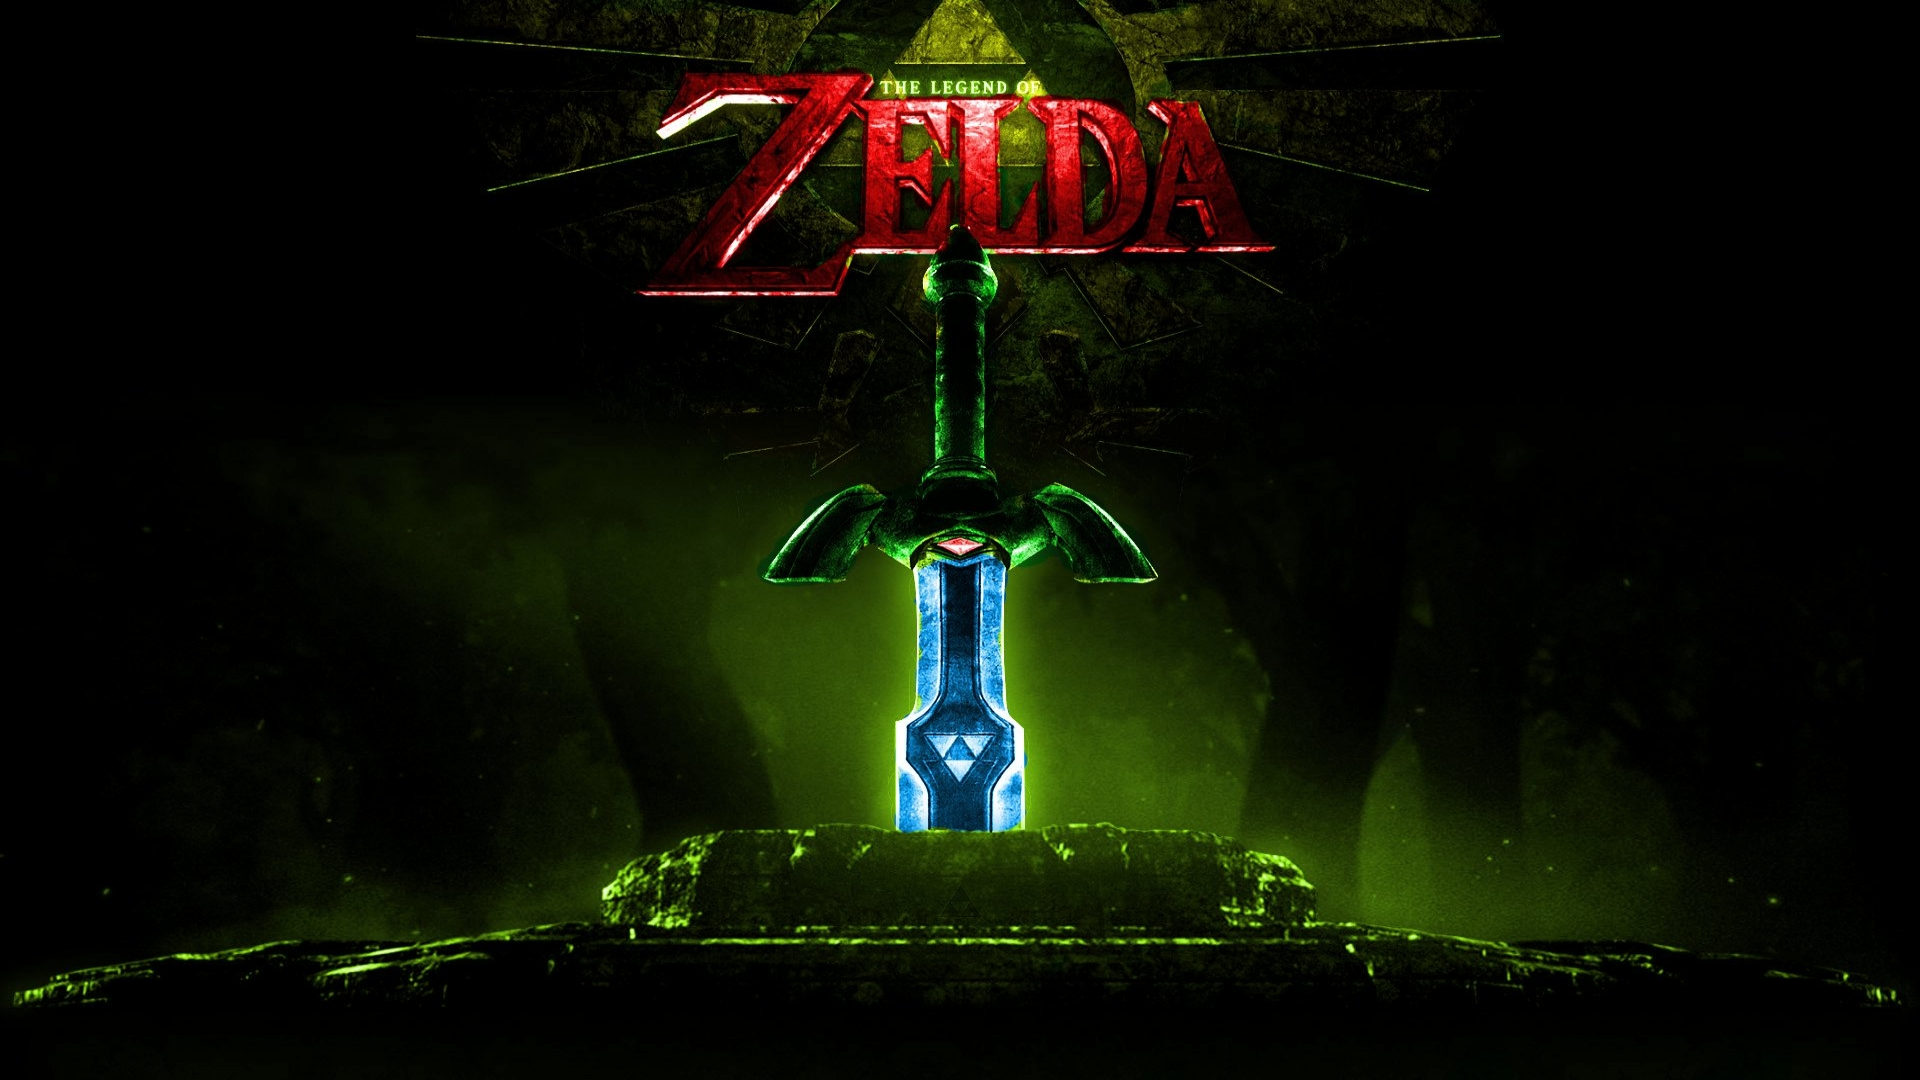 wallpaper zelda 1920x1080   weddingdressincom 1920x1080